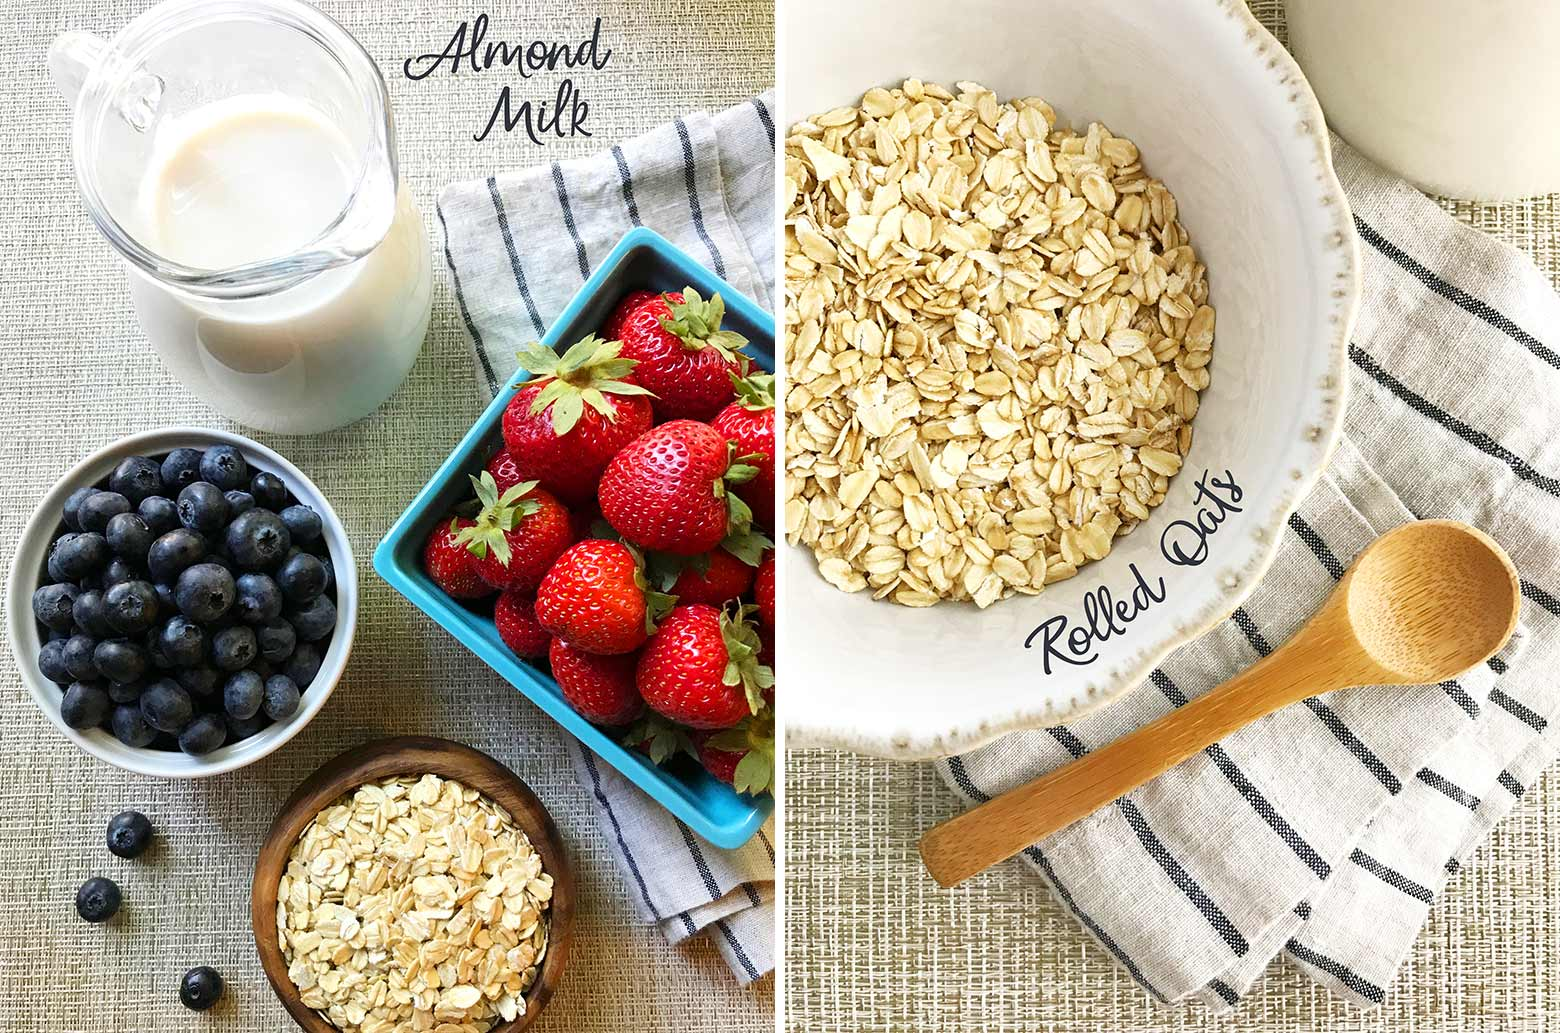 Ingredients to make oatmeal: almond milk, rolled oats and fresh berries